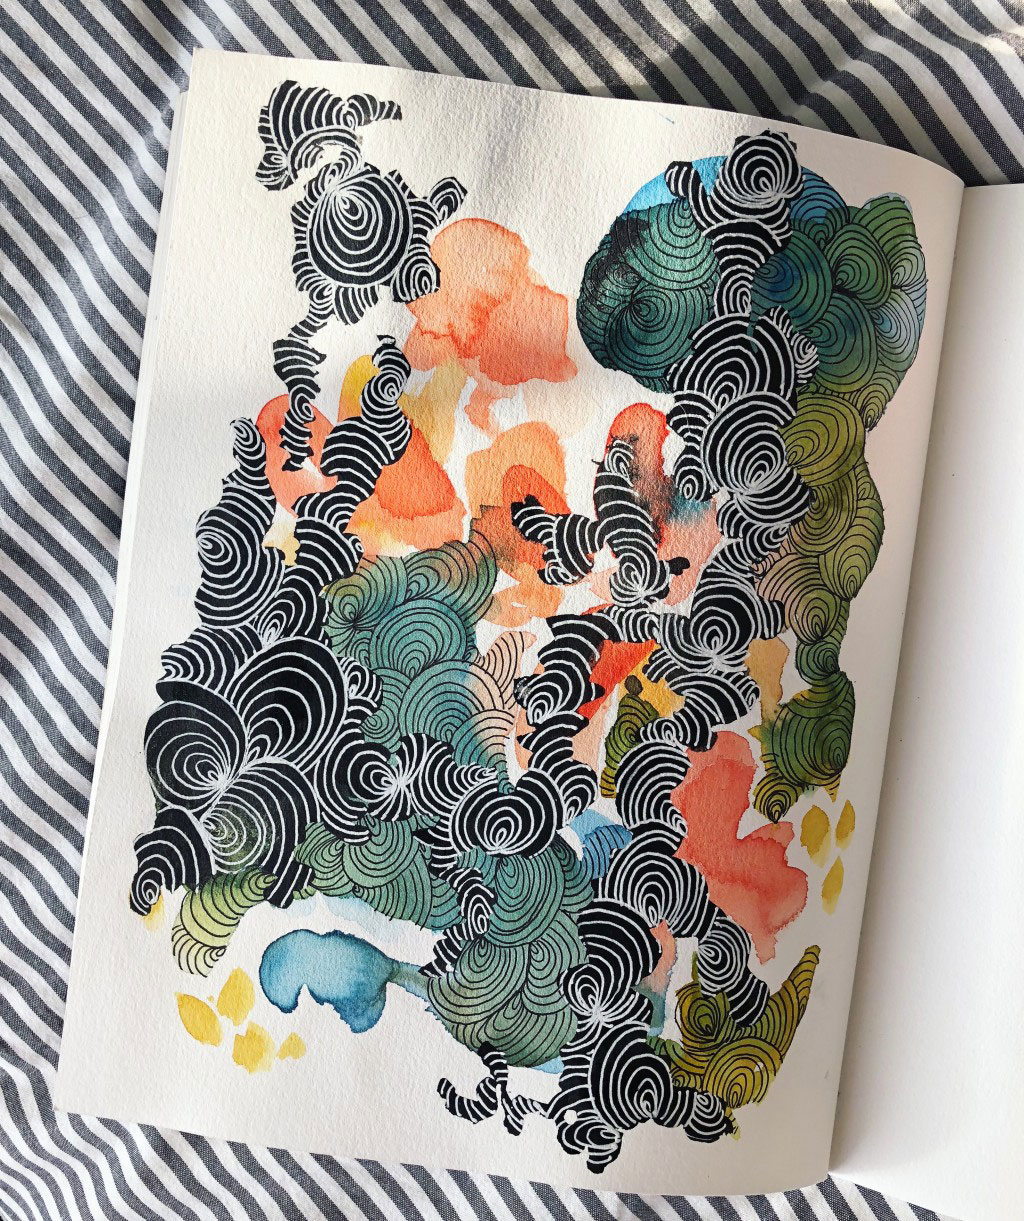 Watercolor painting of different spiraling patterns